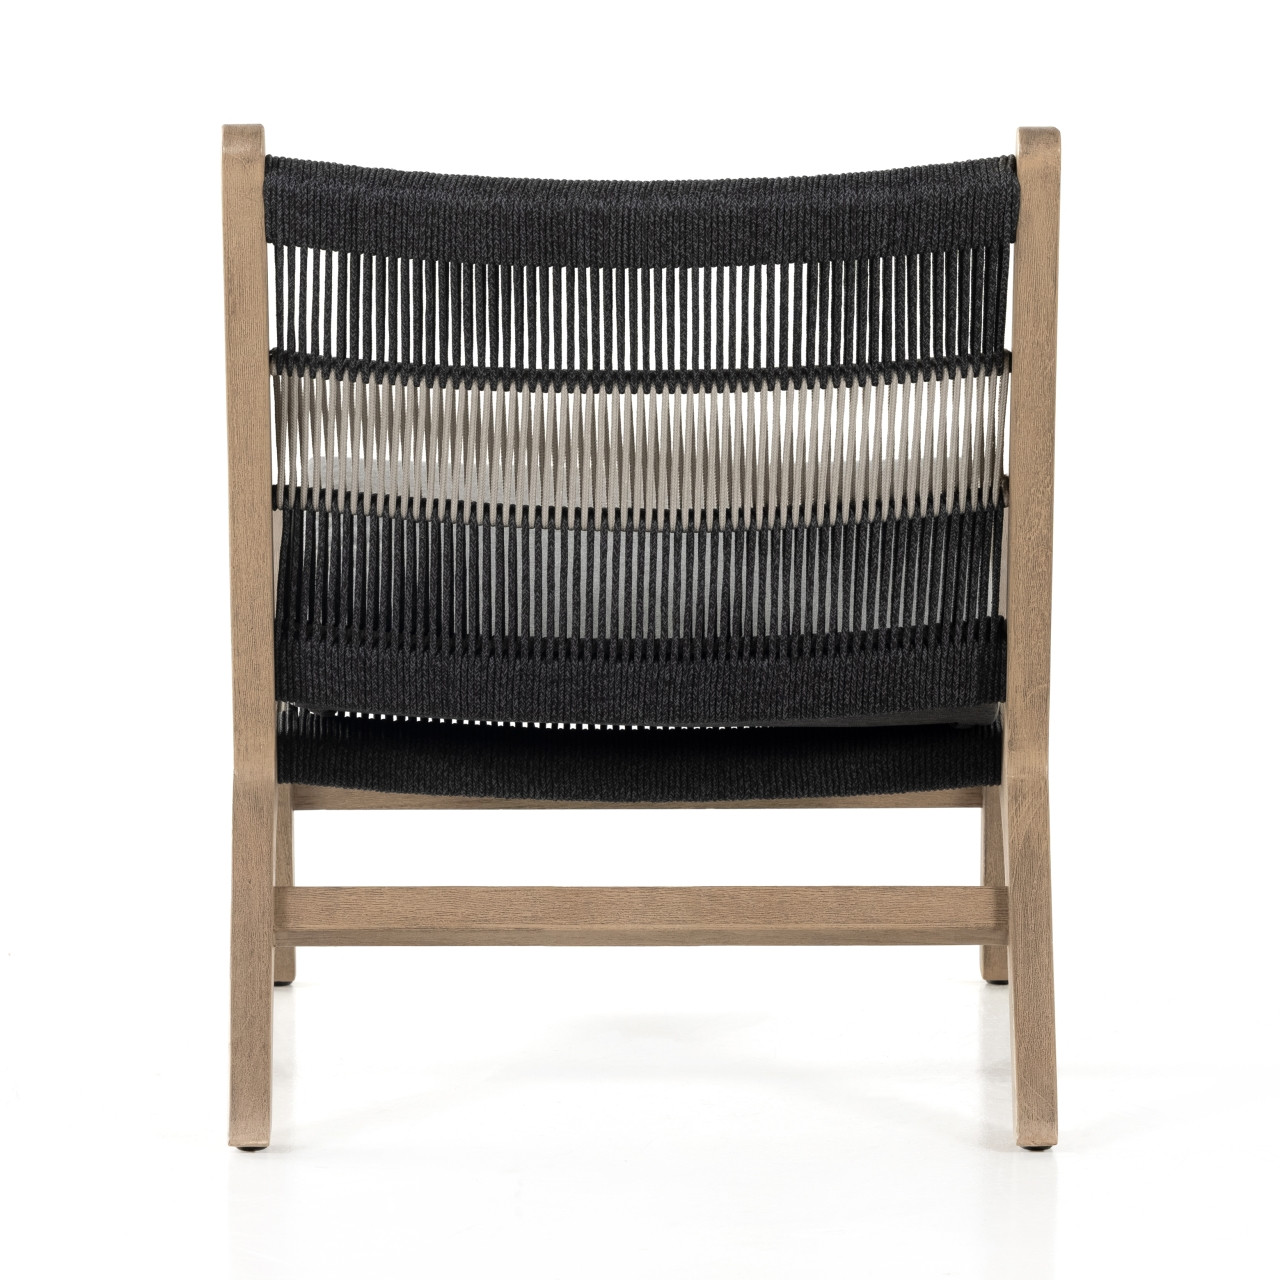 Shelburne Outdoor Chair - Washed Brown